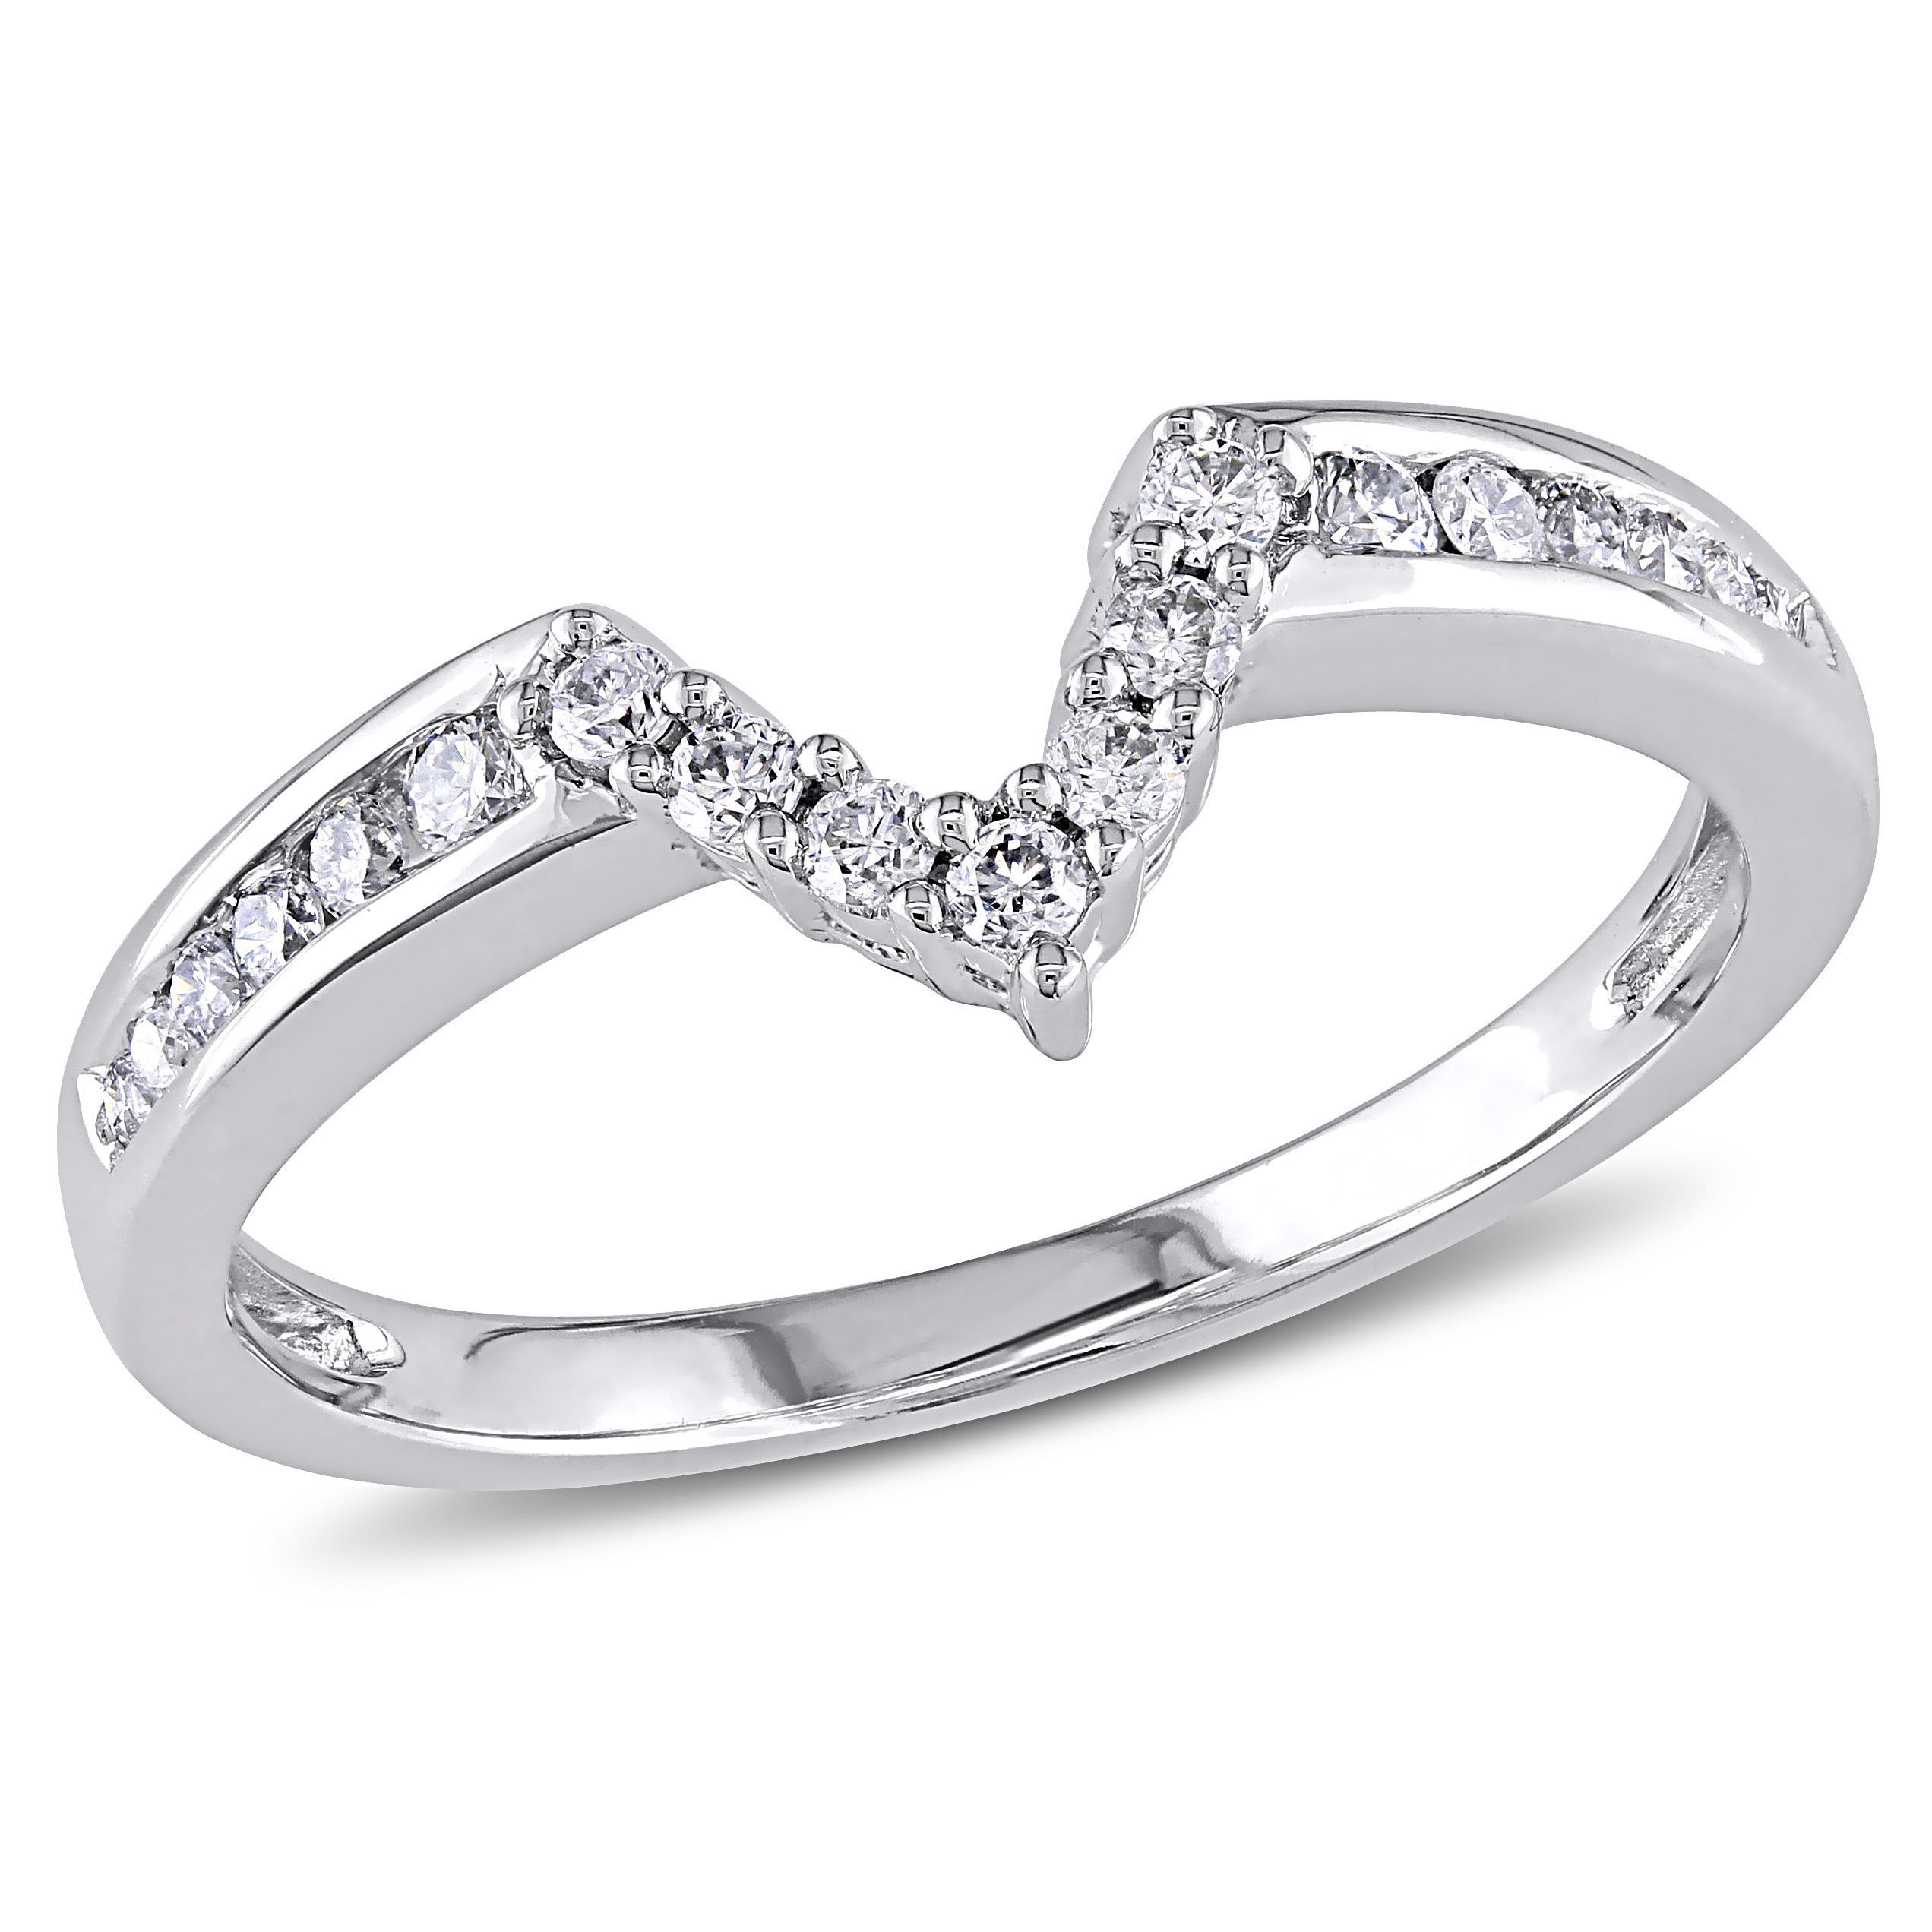 shaped shape halo rings of ring engagement cluster online wedding file diamond retailer premier product pear double